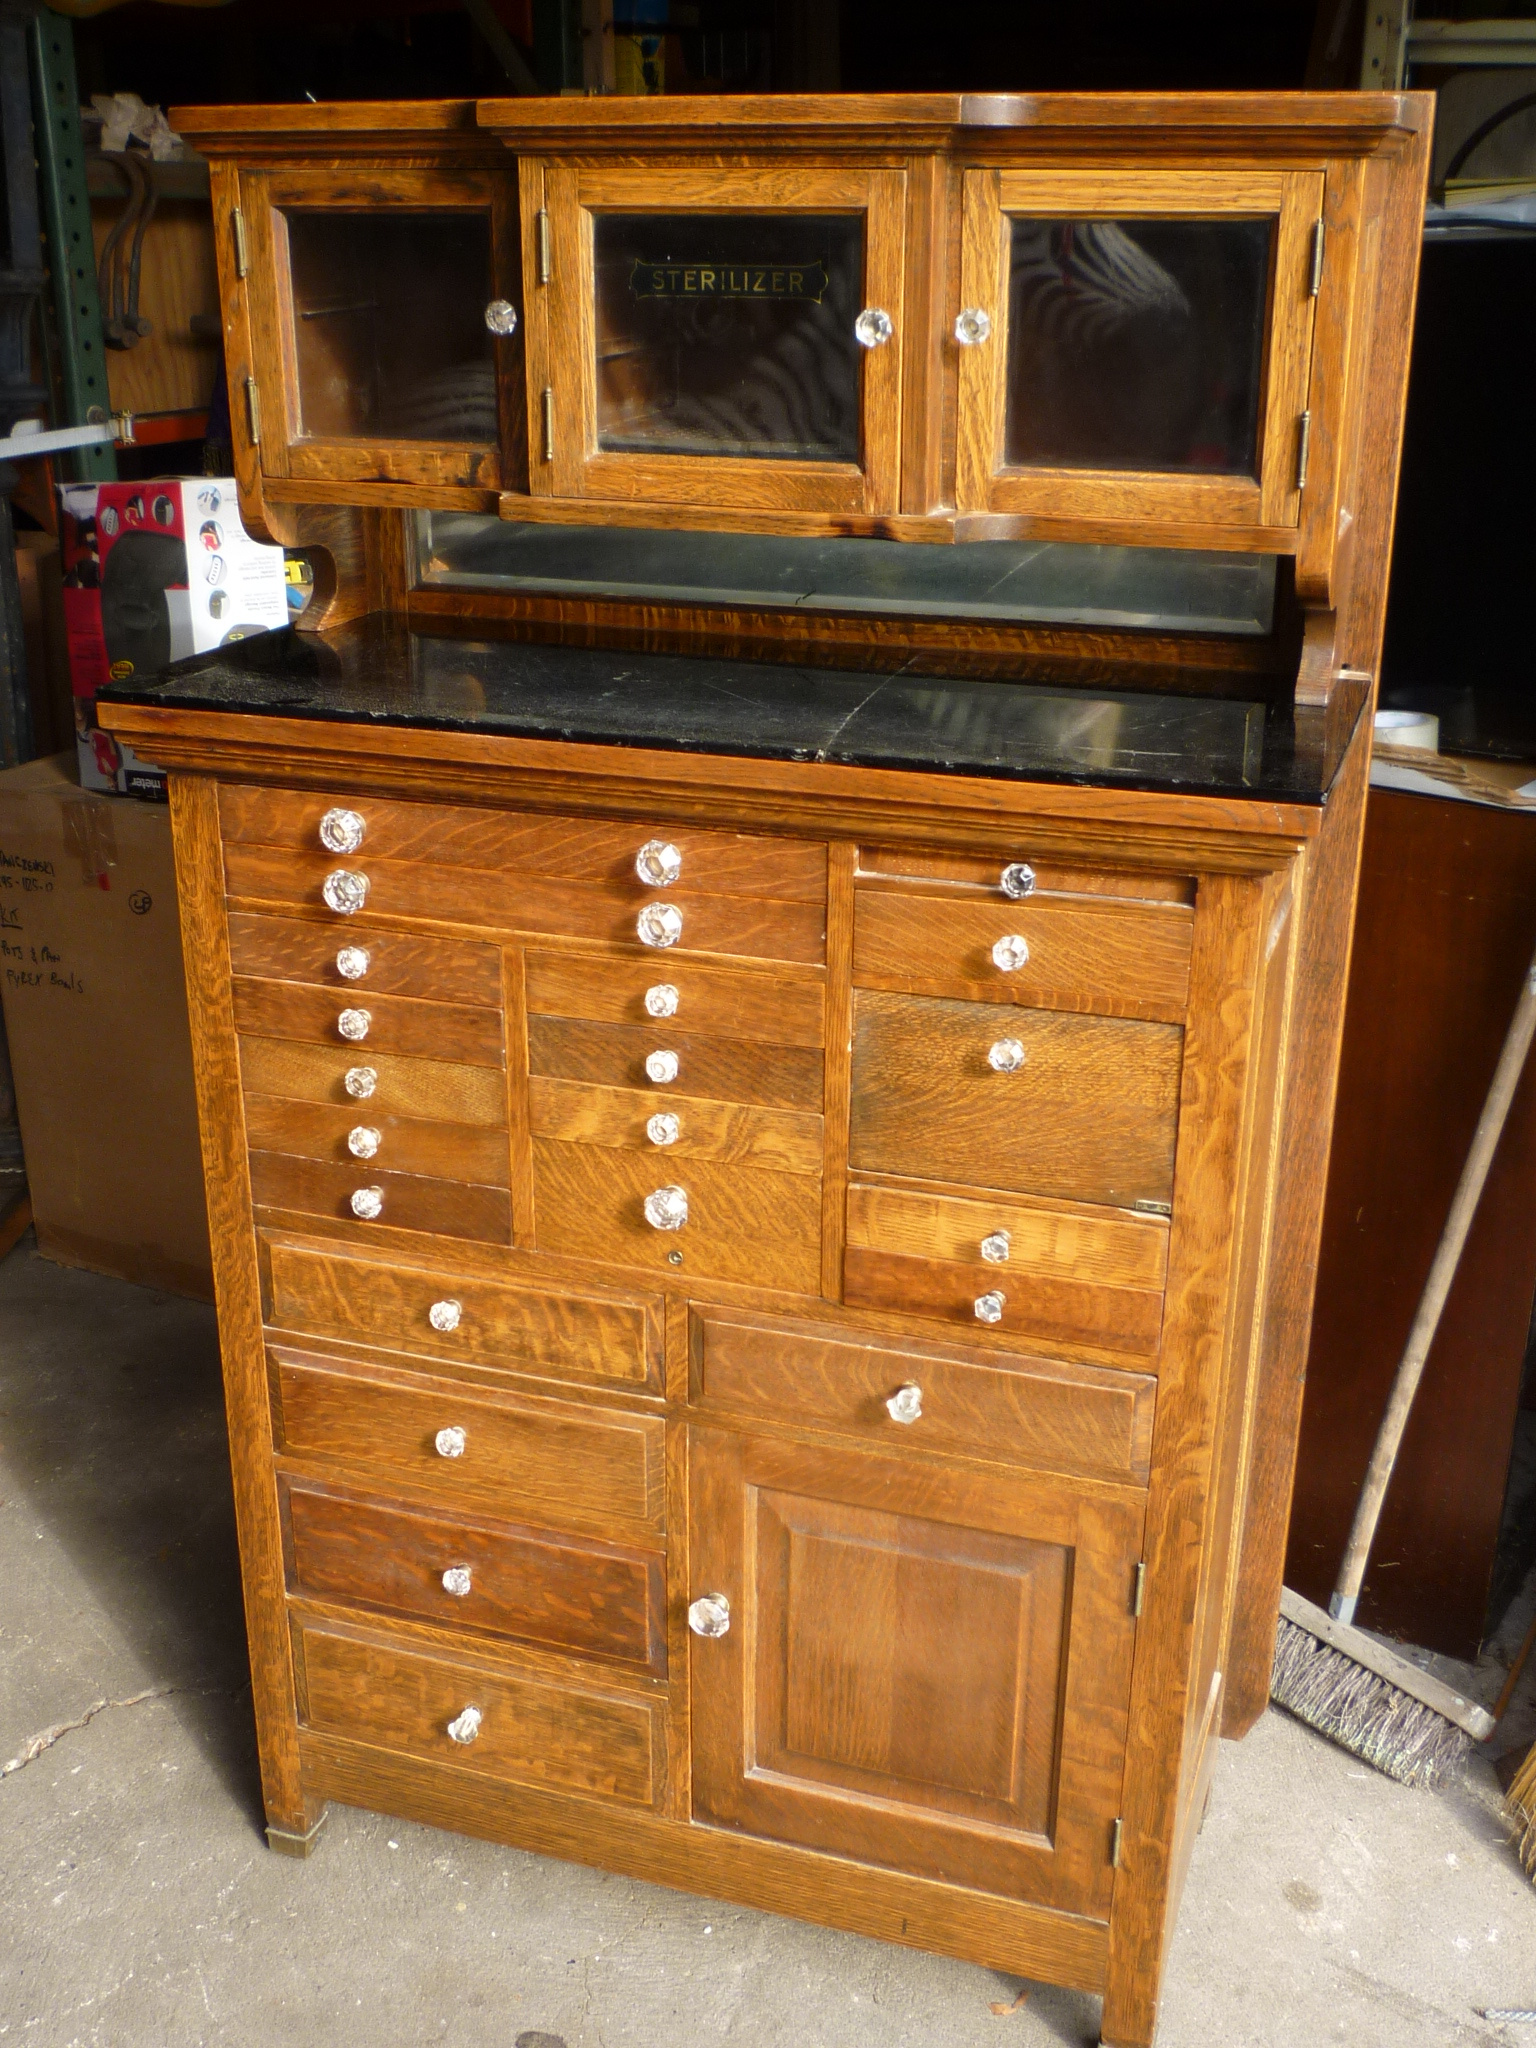 Antique Oak Dentist Cabinet - Antique Oak Dentist Cabinet « Obnoxious Antiques